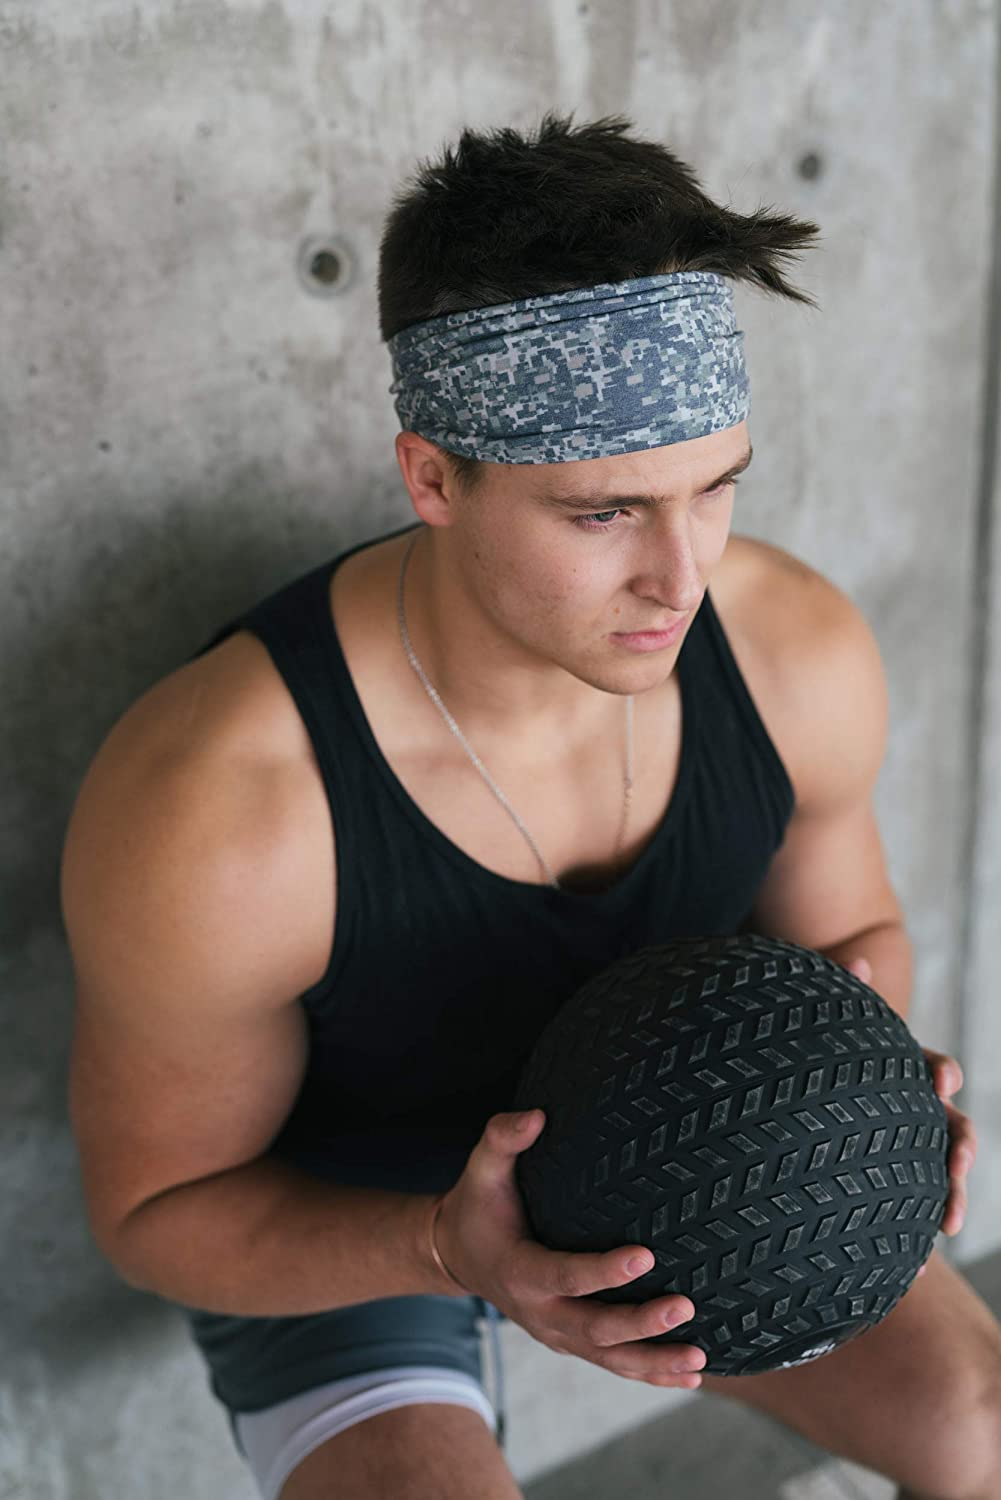 Maven Thread Mens Headband Yoga Running Exercise Sports Workout Athletic Gym Wide Sweat Wicking Stretchy No Slip 2 Pack Set Green Pixel Camo and Black Solid Pixel Camo